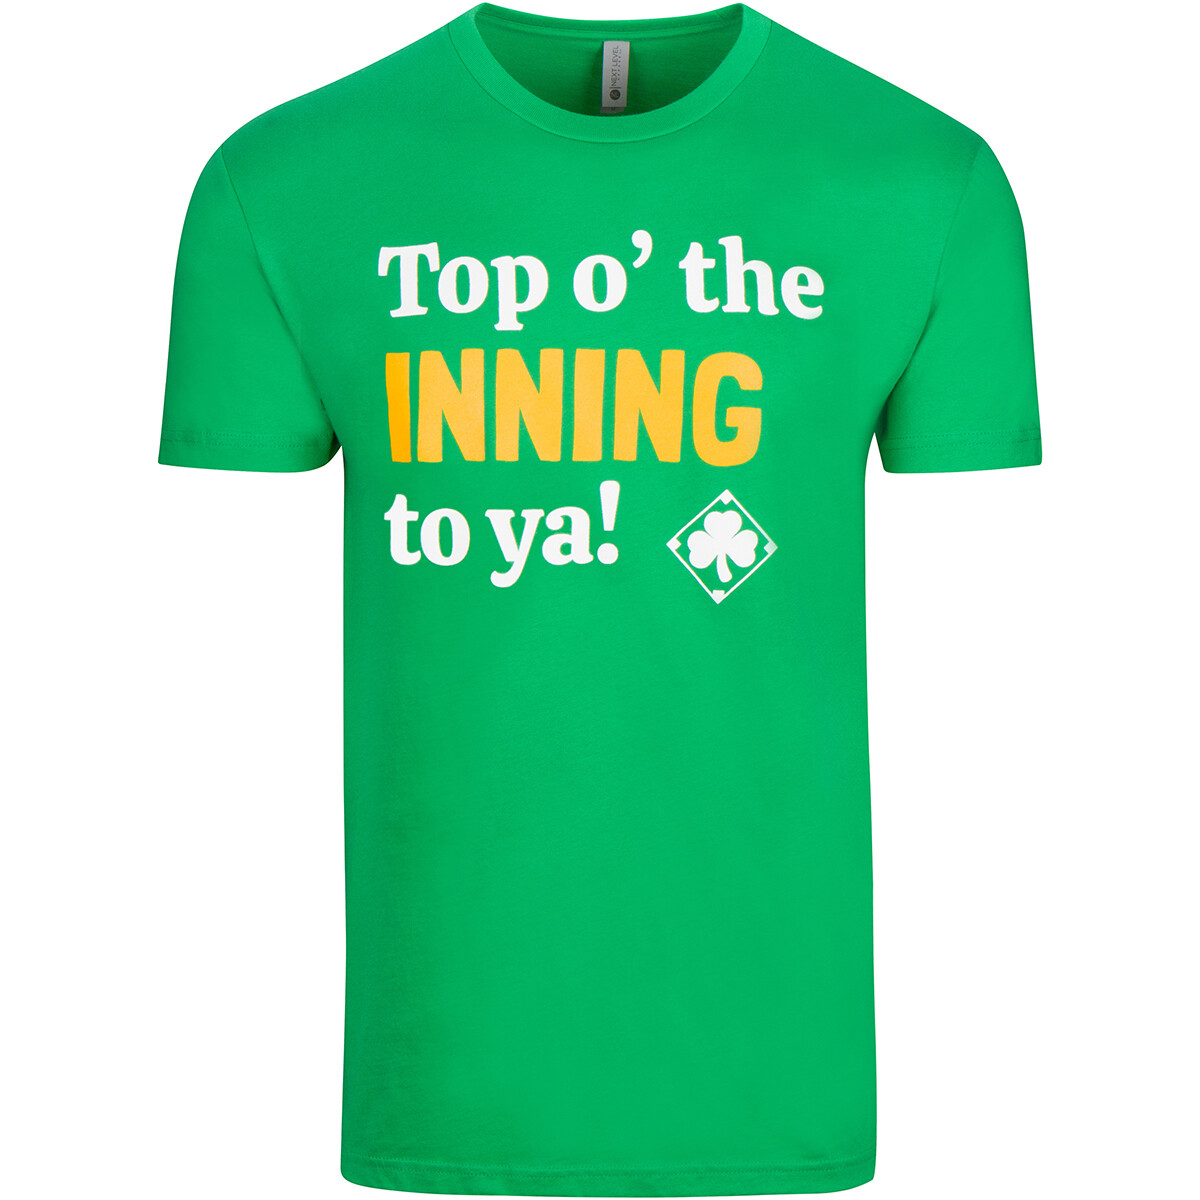 Top o' the Inning To Ya! T-shirt